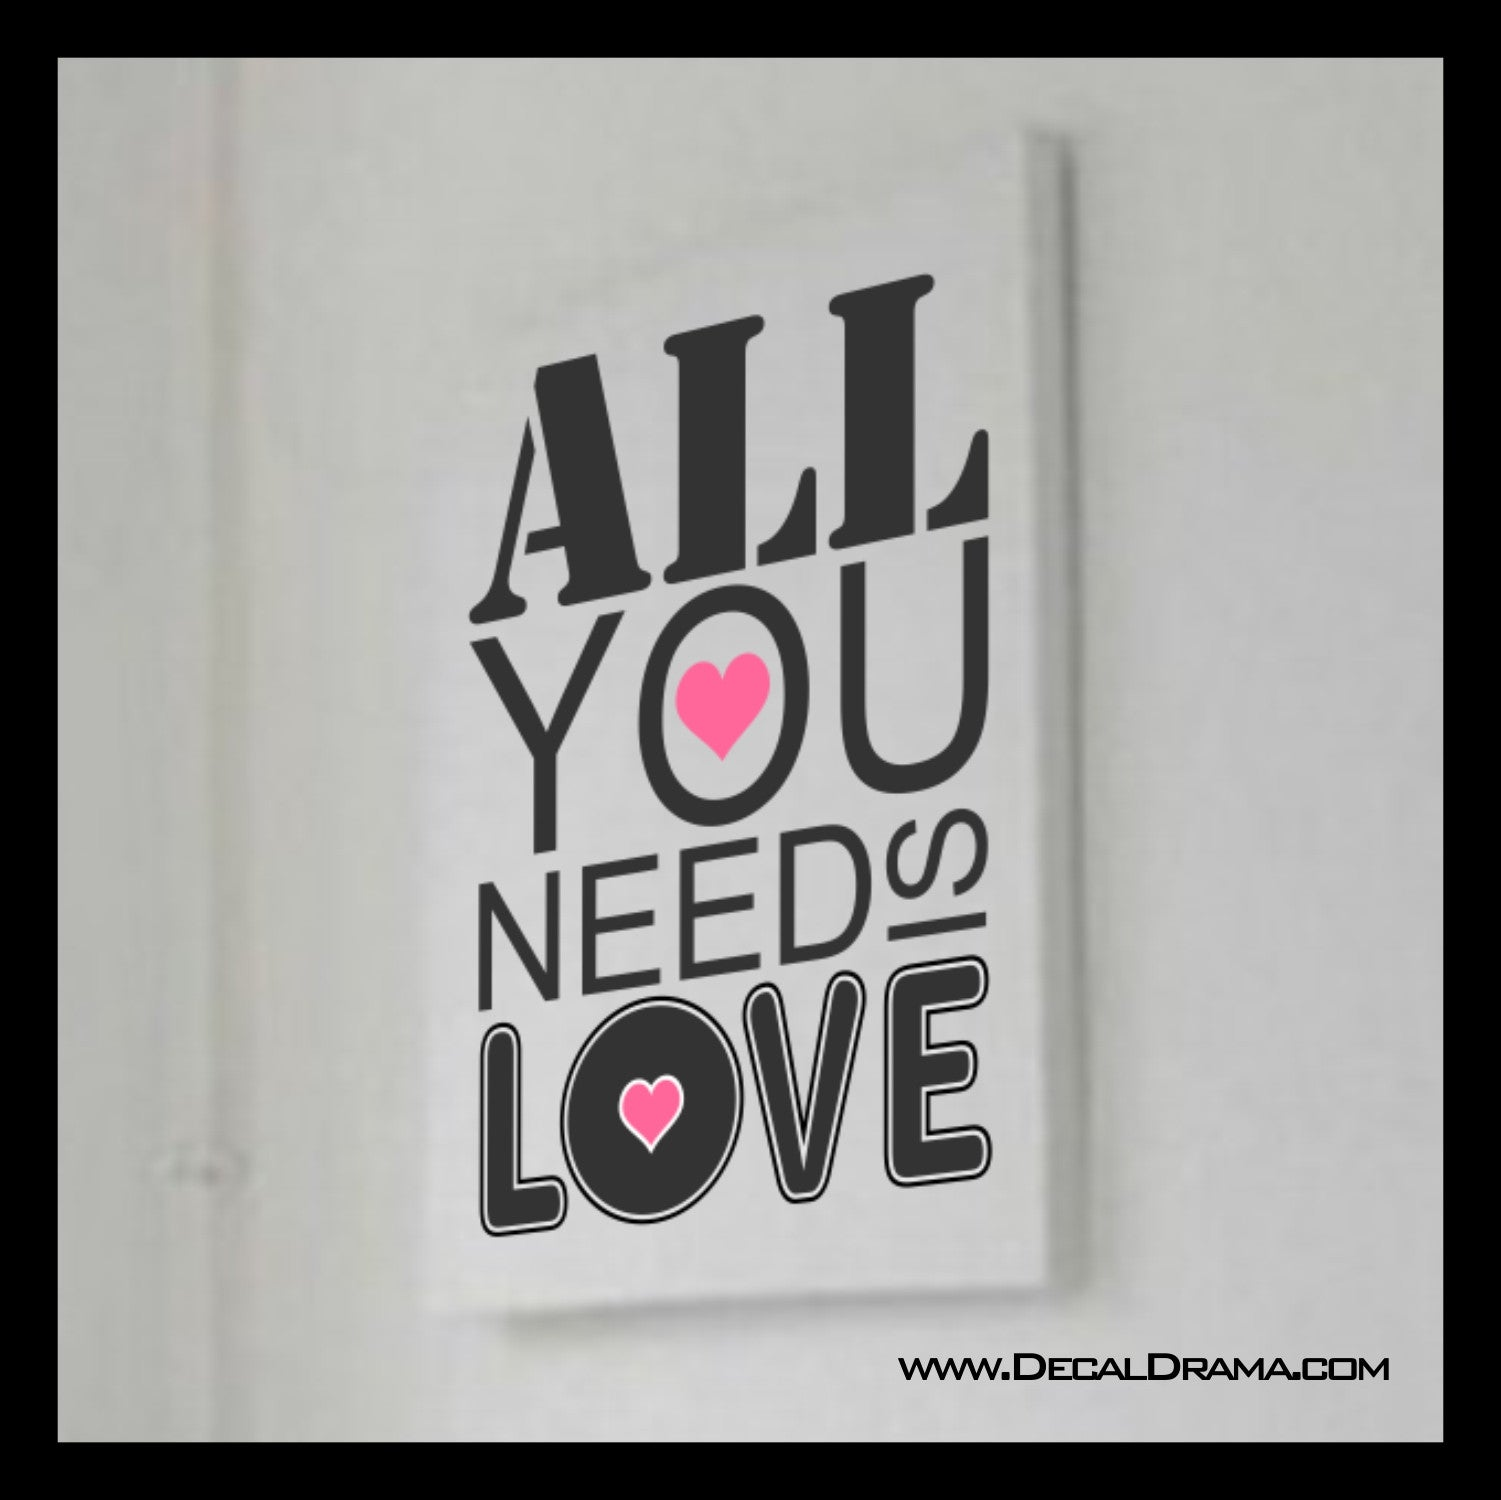 All You Need Is Love, John Lennon The Beatles lyric Vinyl Wall Decal